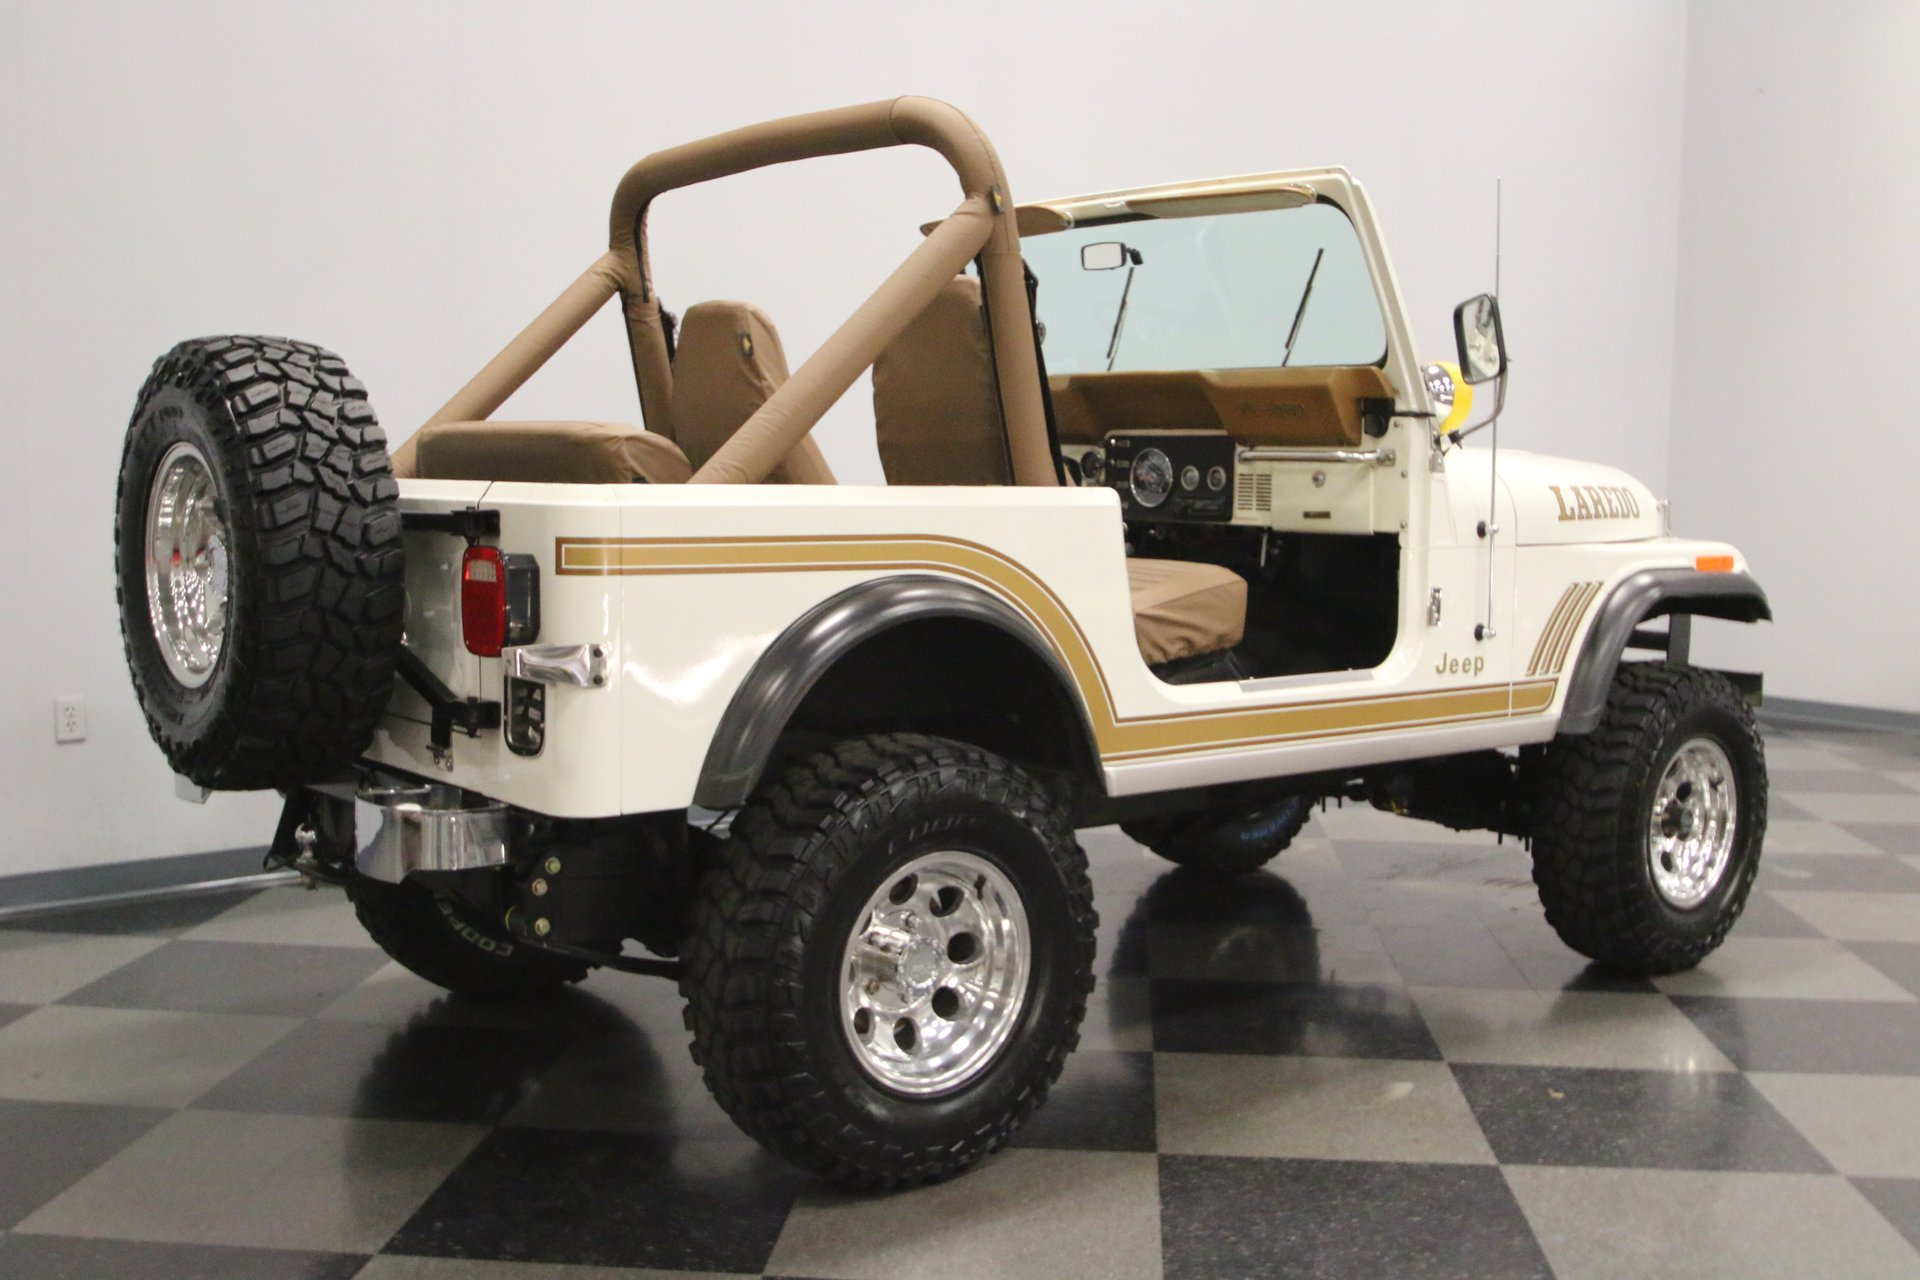 hight resolution of for sale 1985 jeep cj7 spincar view view 360